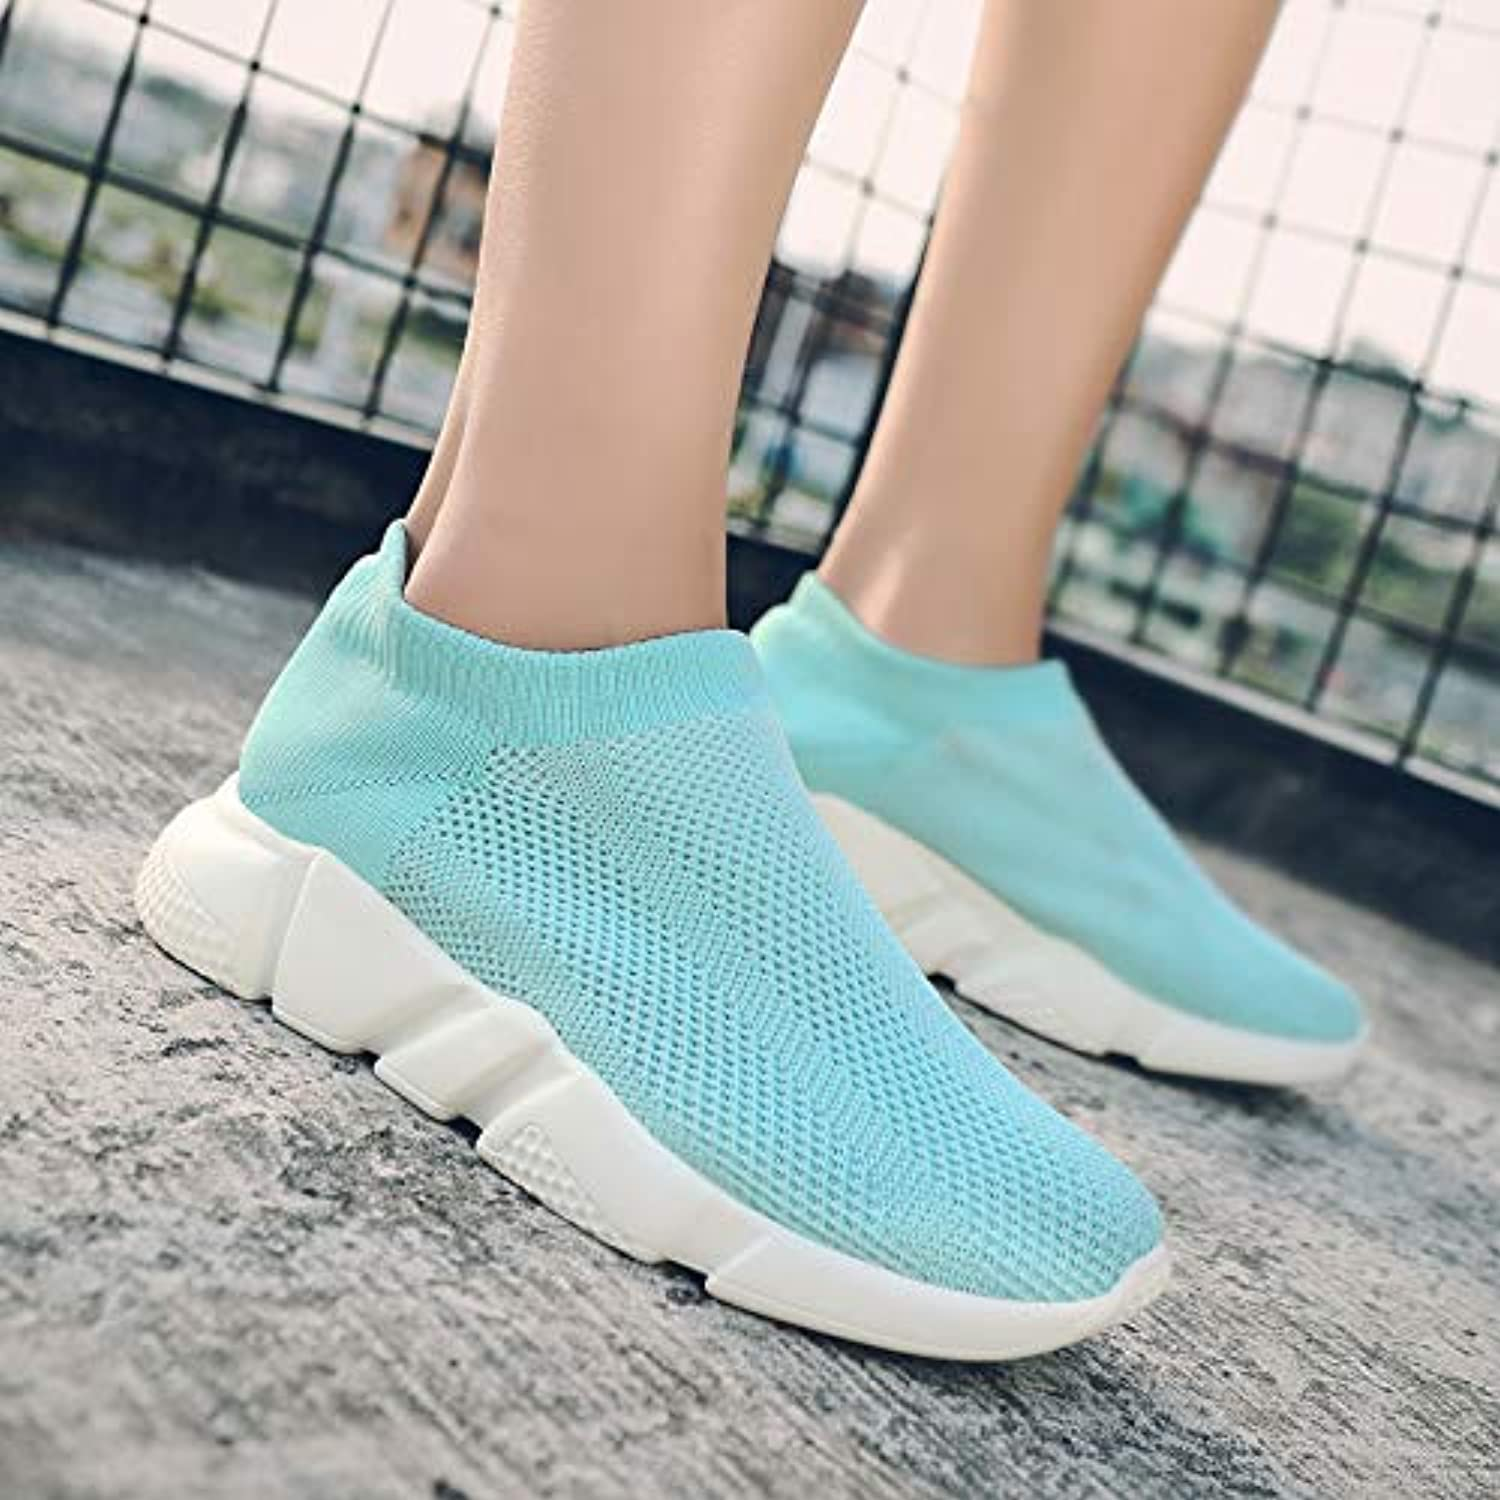 HCBYJ Socks shoes Mesh breathable summer casual sports shoes men's socks shoes a pedal lazy shoes men's shoes comfortable socks shoes